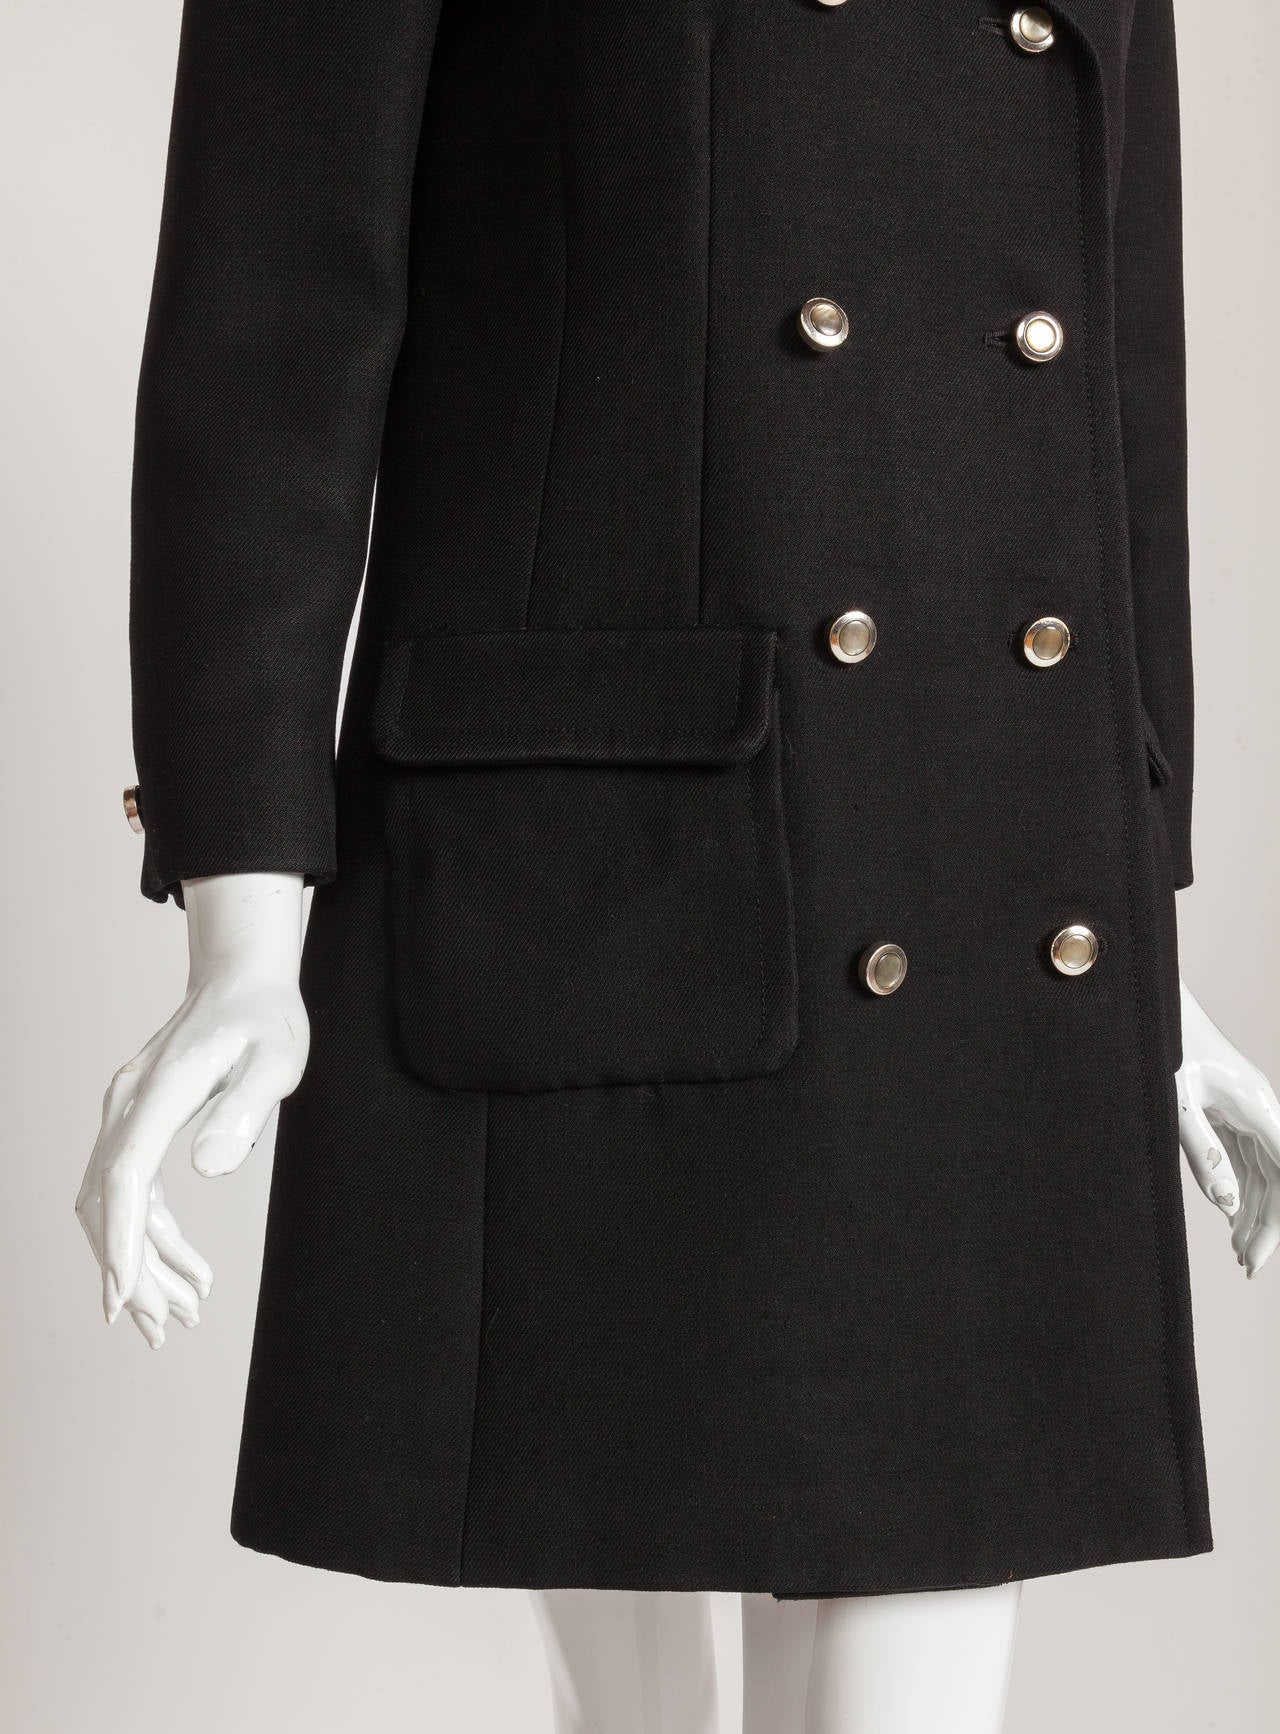 1960s Pierre Cardin Double-Breasted Black Wool Twill 3/4 Length Coat Jacket 4